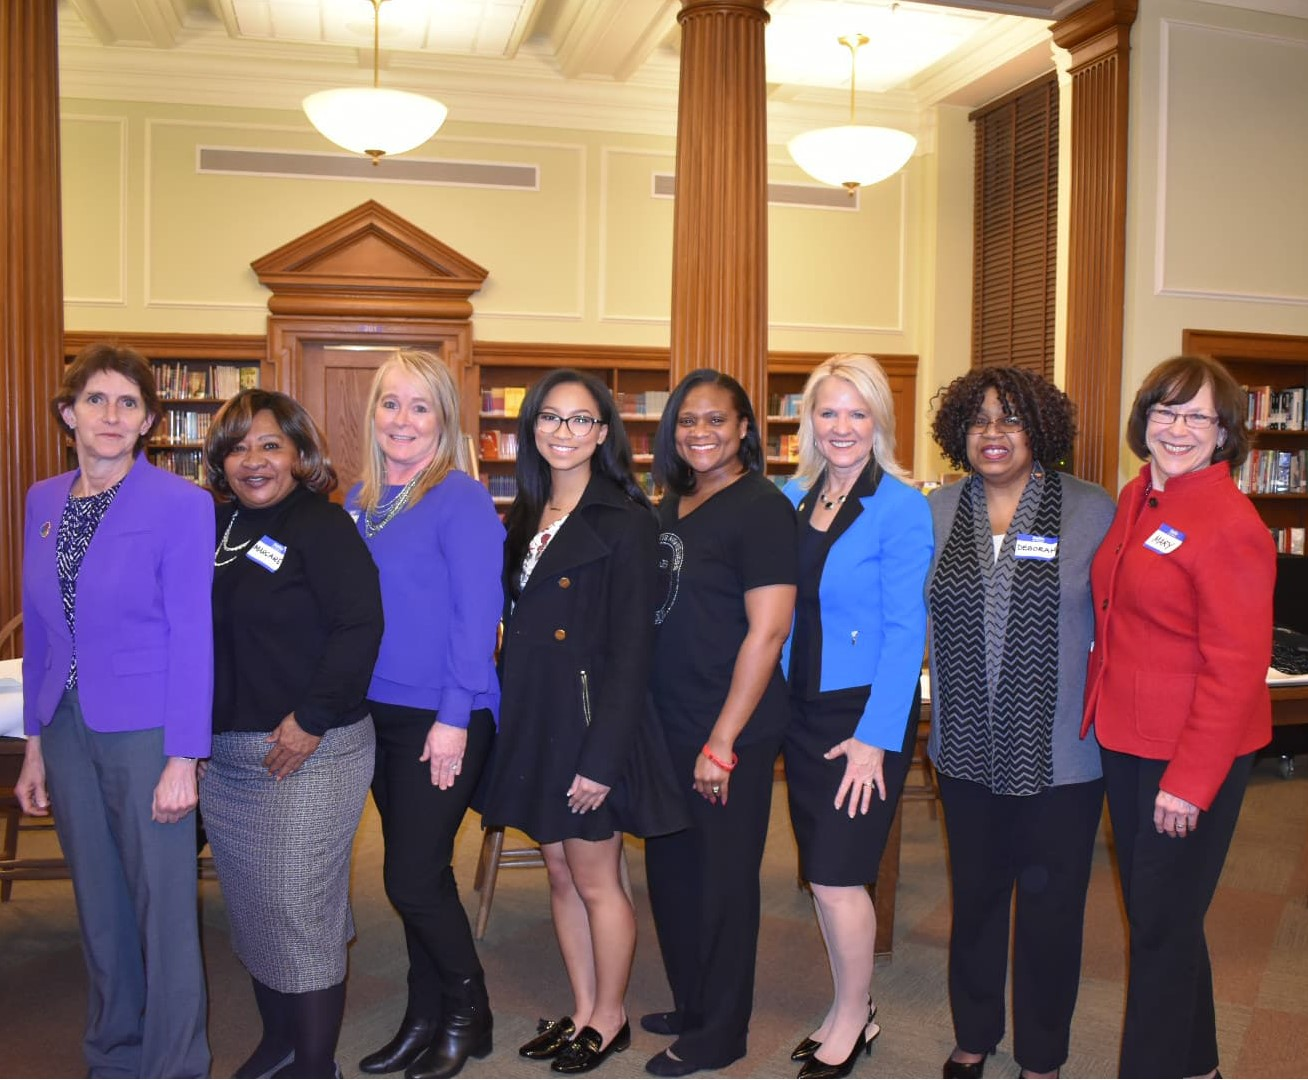 HerStory Ensemble's Founder, Dr. DeBorah Gilbert White (second from right), with Delaware's Lt. Governor Bethany Hall-Long (third from right) and event facilitators at the Mental Health Community Forum in Wilmington, Delaware in 2018.